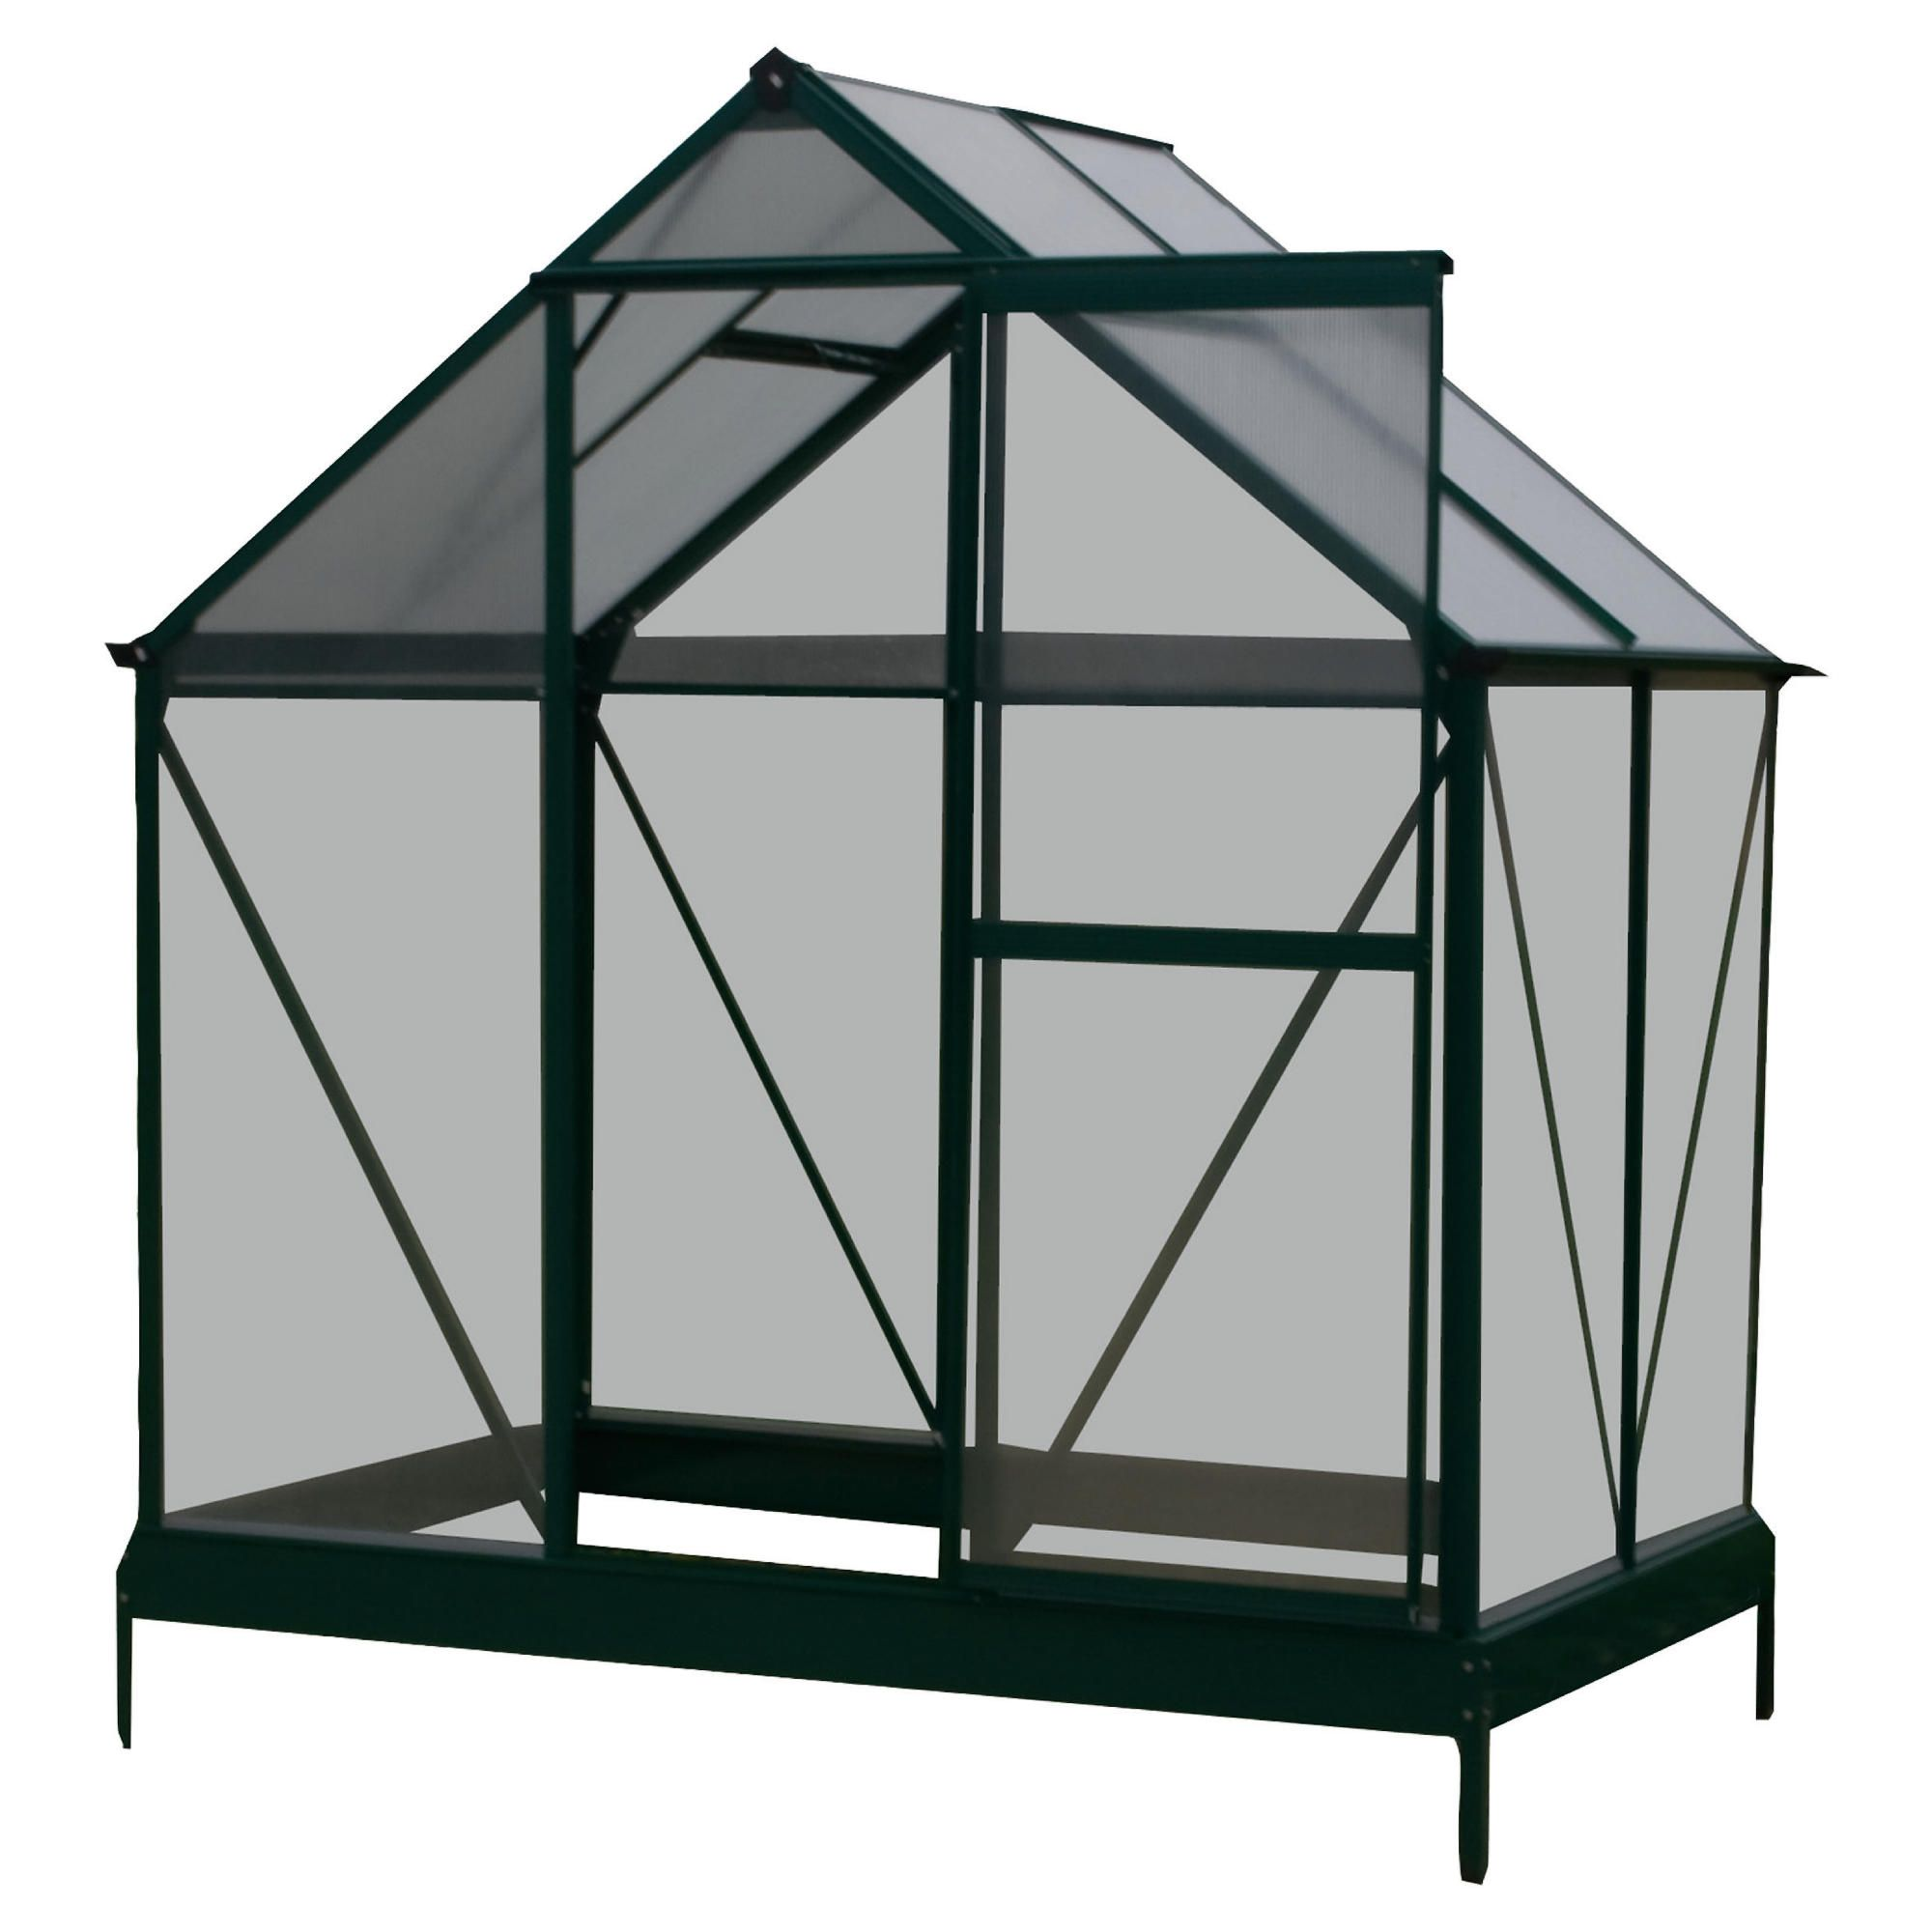 4 x 6 Aluminium & Polycarb Greenhouse at Tesco Direct